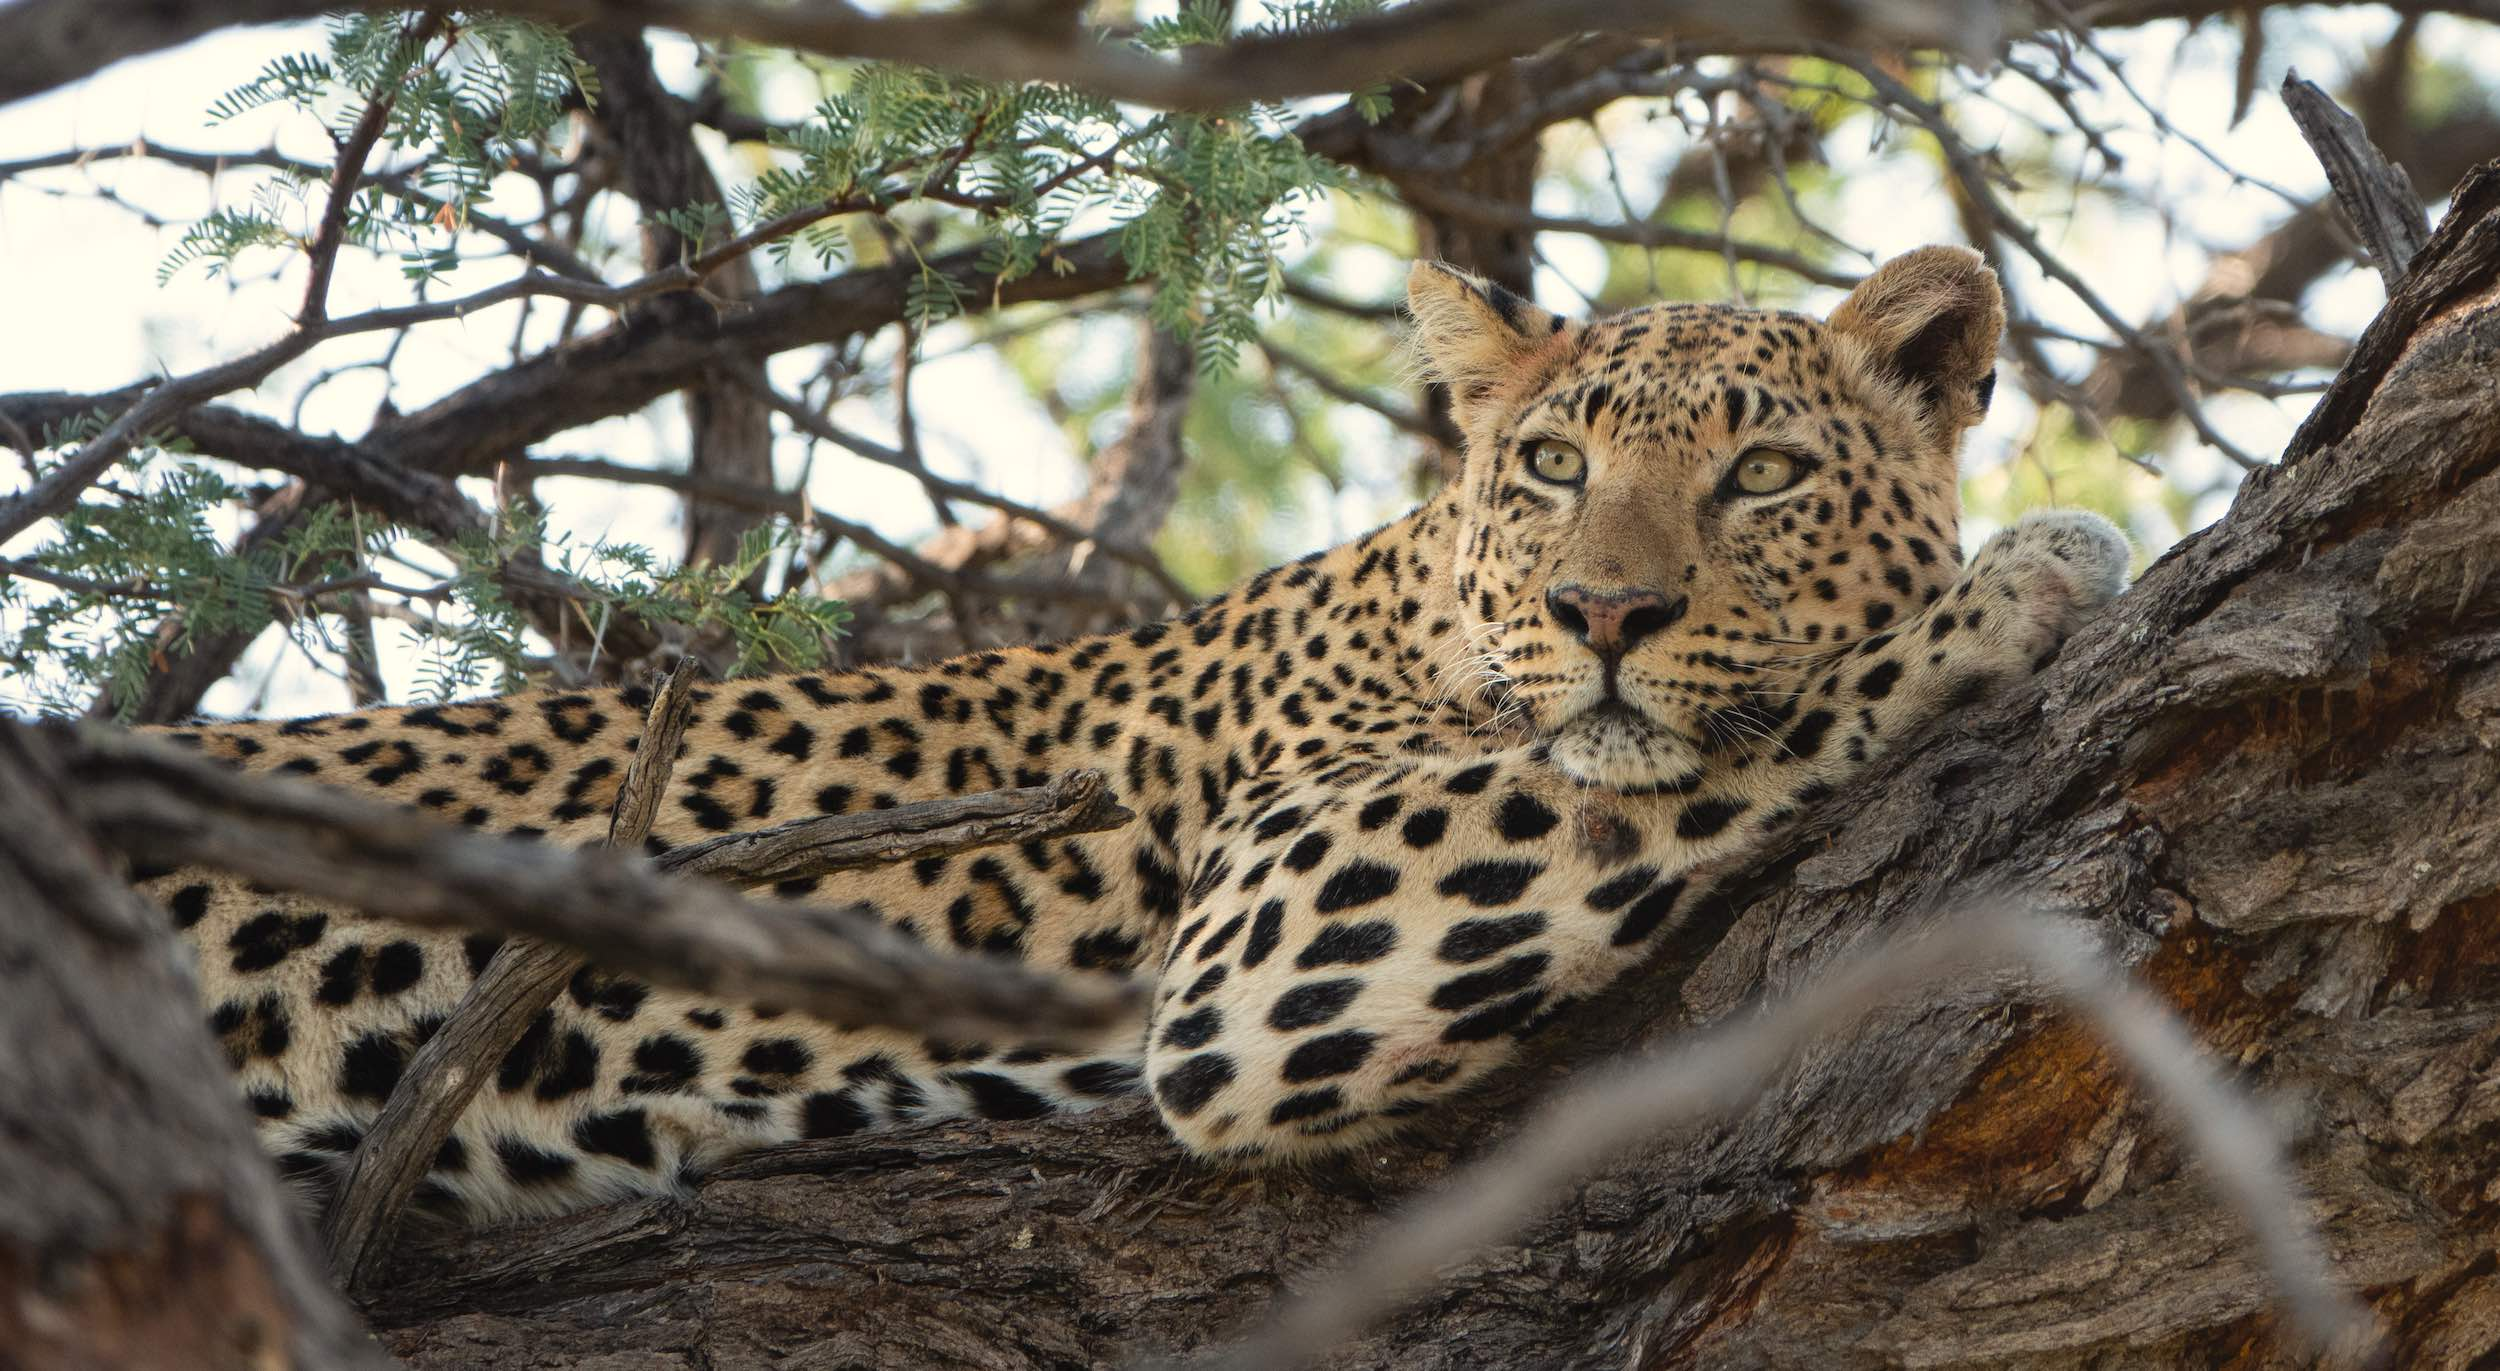 A leopard relaxes on the branch of a tree.